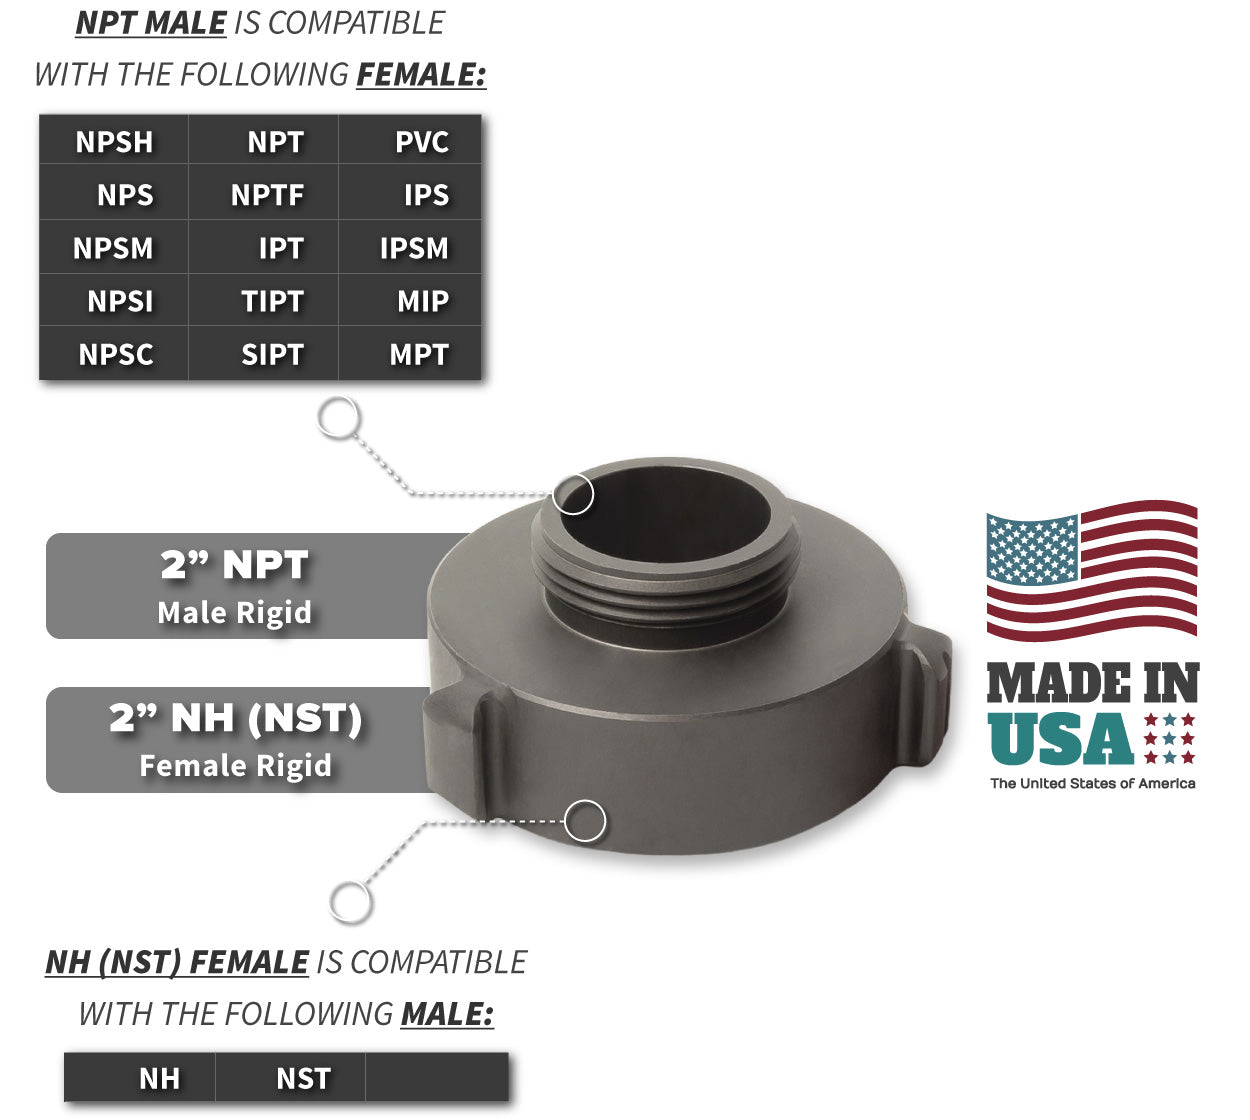 2 Inch NH-NST Female x 2 Inch NPT Male Compatibility Thread Chart